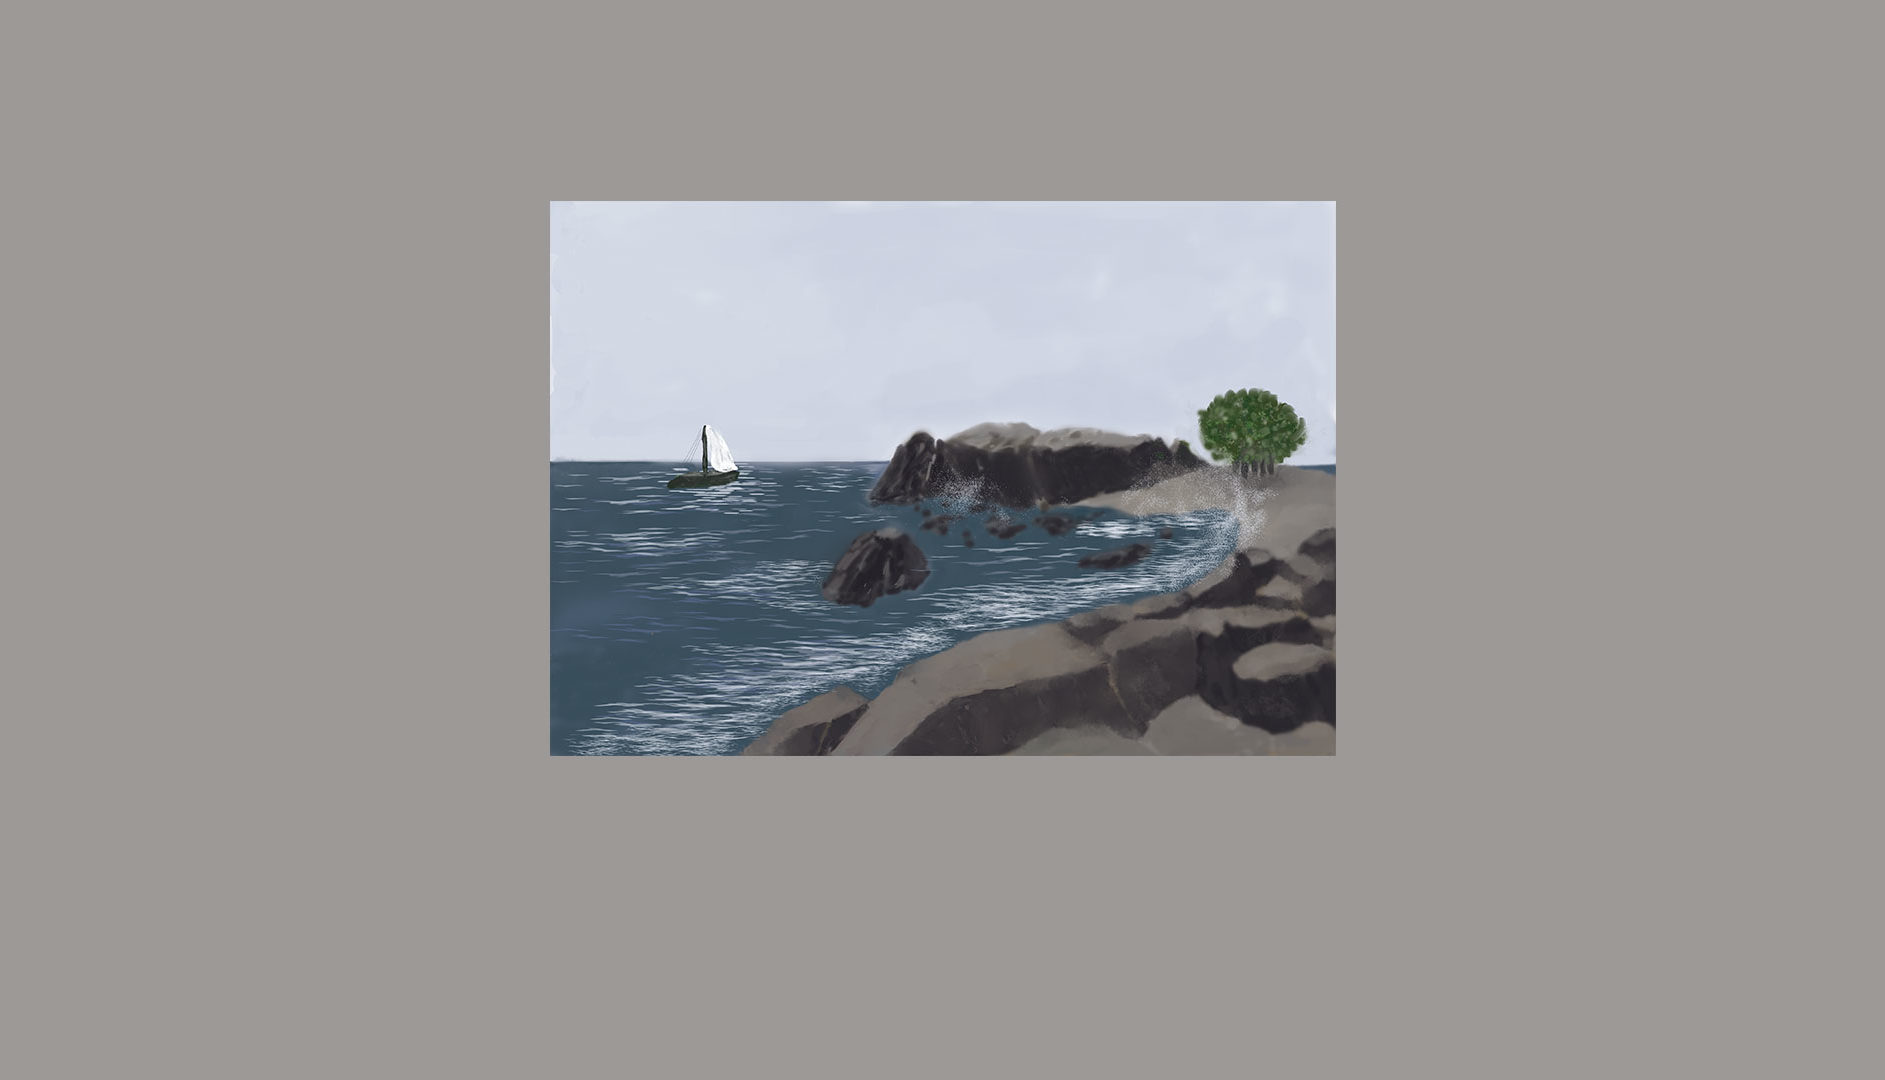 Paysage de Crète - Digital Painting sur Photoshop